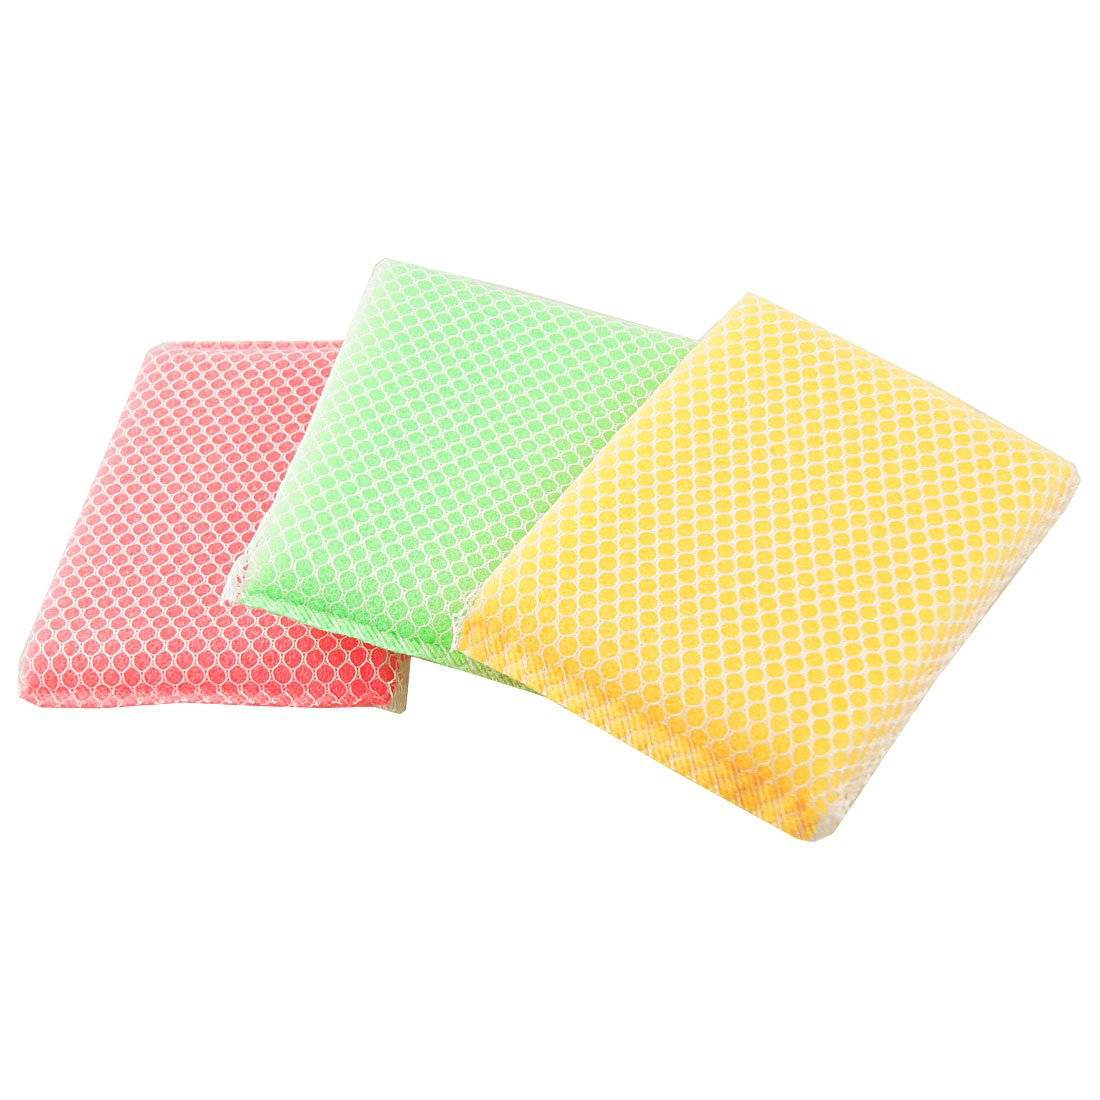 HOT GCZW-Kitchen Dish Bowl Green red Yellow Scouring Sponge Cleaning Pads 3 Pcs